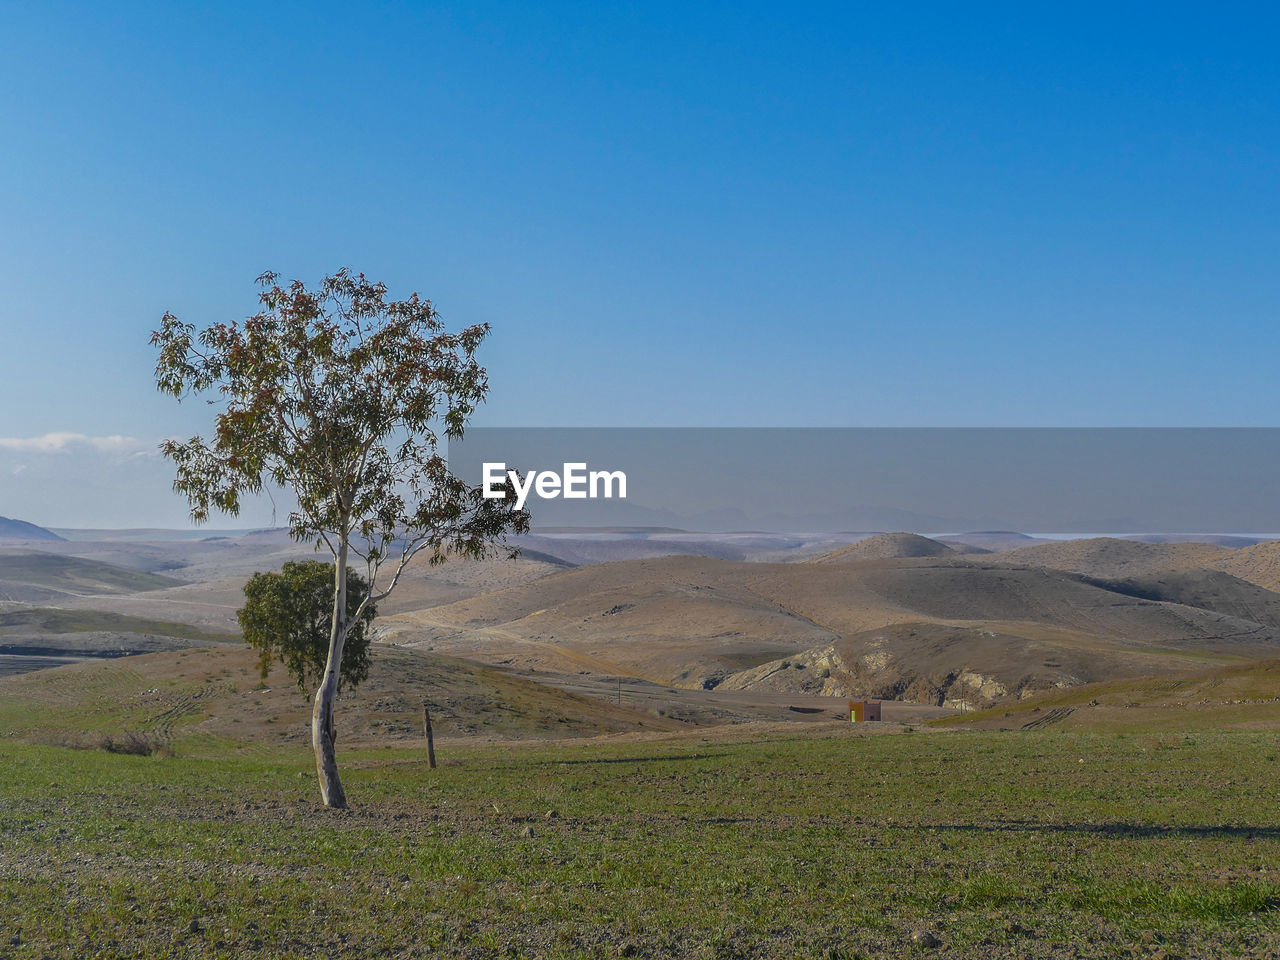 environment, sky, landscape, tranquility, tranquil scene, plant, beauty in nature, scenics - nature, land, non-urban scene, nature, tree, field, grass, blue, copy space, clear sky, no people, mountain, remote, outdoors, climate, arid climate